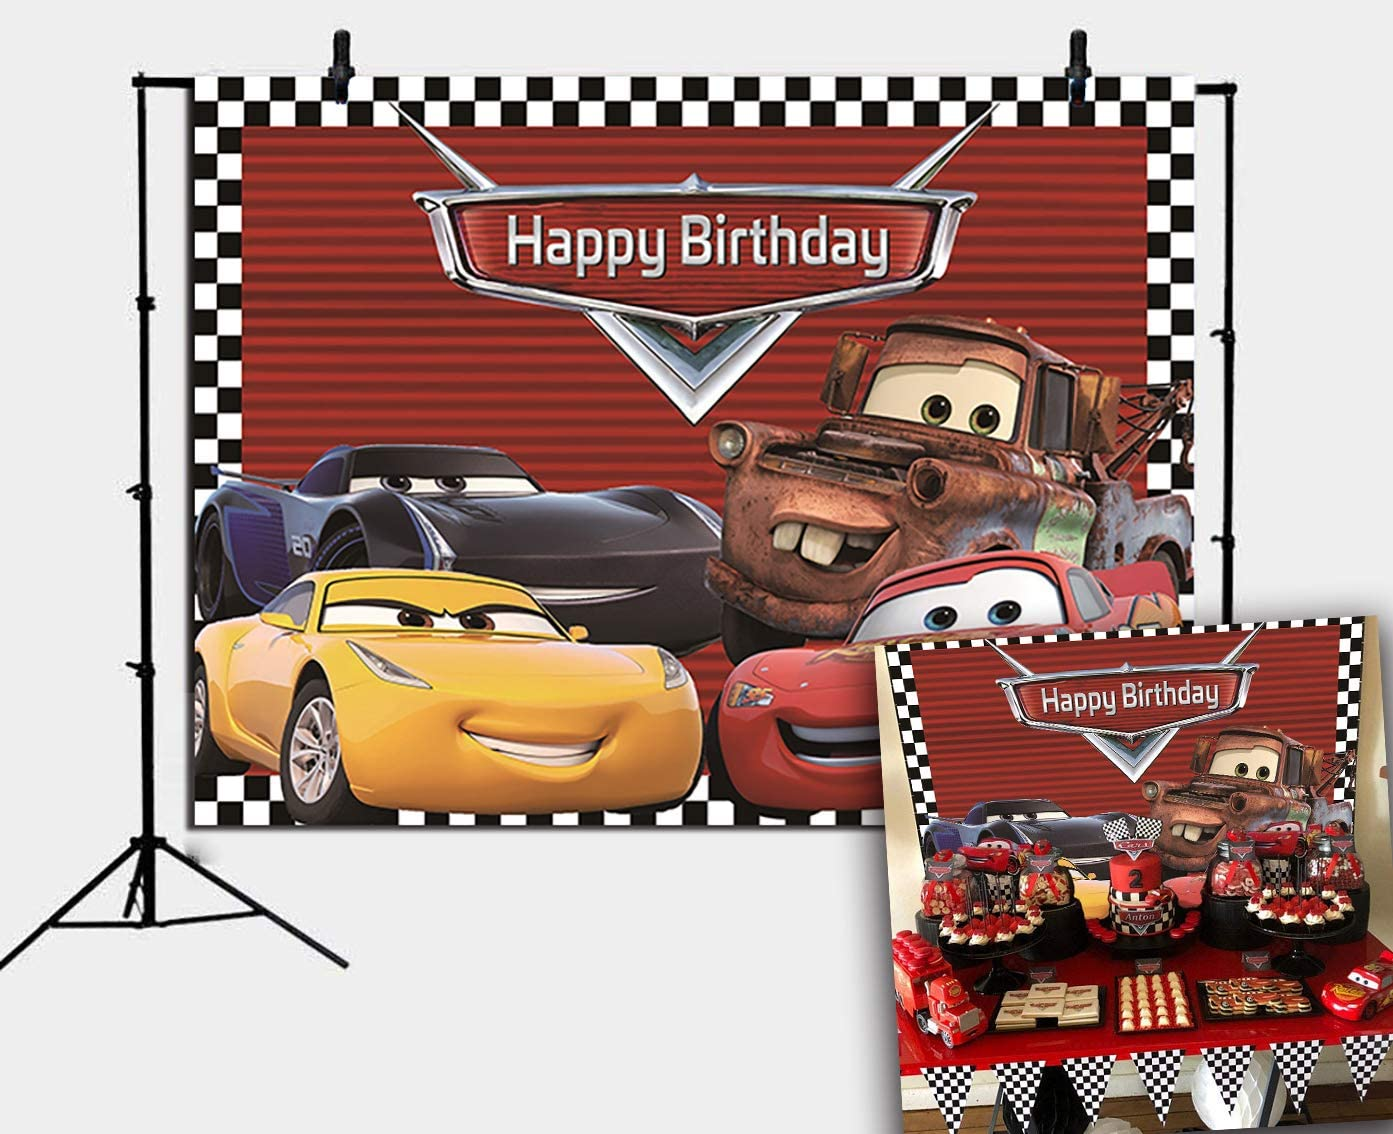 Red Cars Backdrop for Children Boys Birthday Party Supplies Vinyl Checkered Flag Racing Car Story Photo Background Banner Baby Show Photo Booth Studio Props Cake Table Decor (7x5ft)